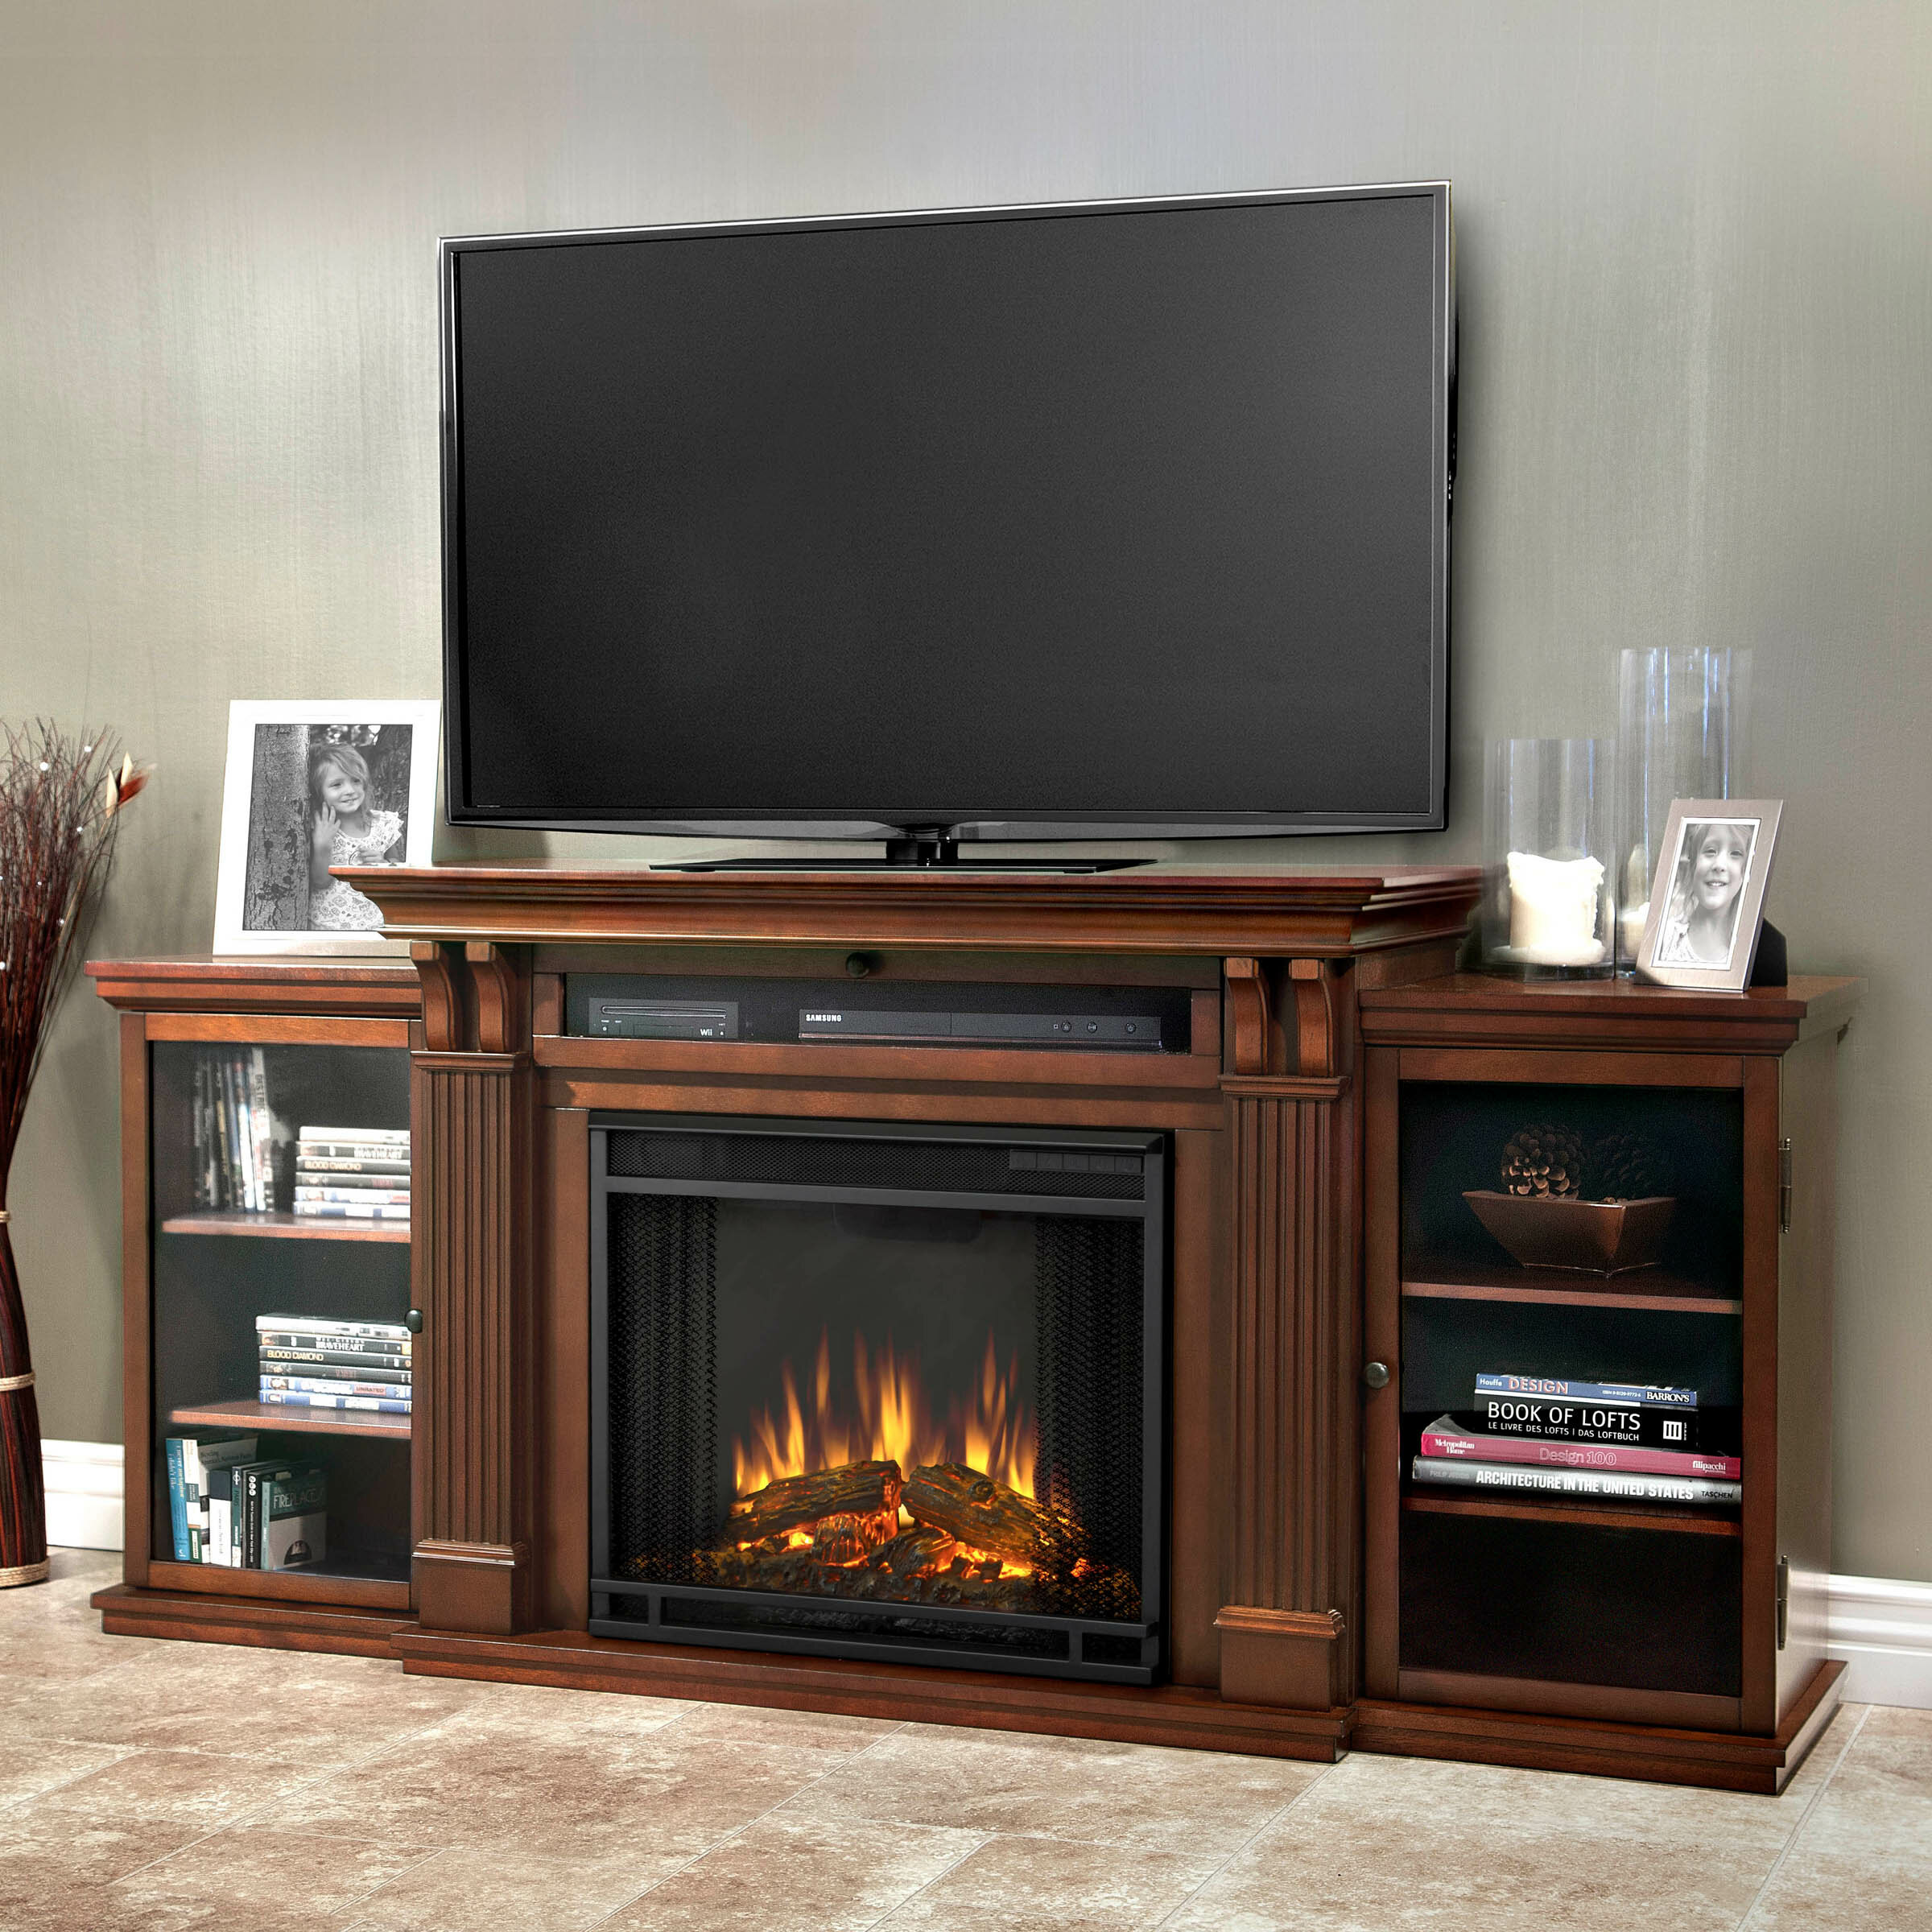 innovational stands fireplace interior tv fireplaces black ideas design modern with stand living